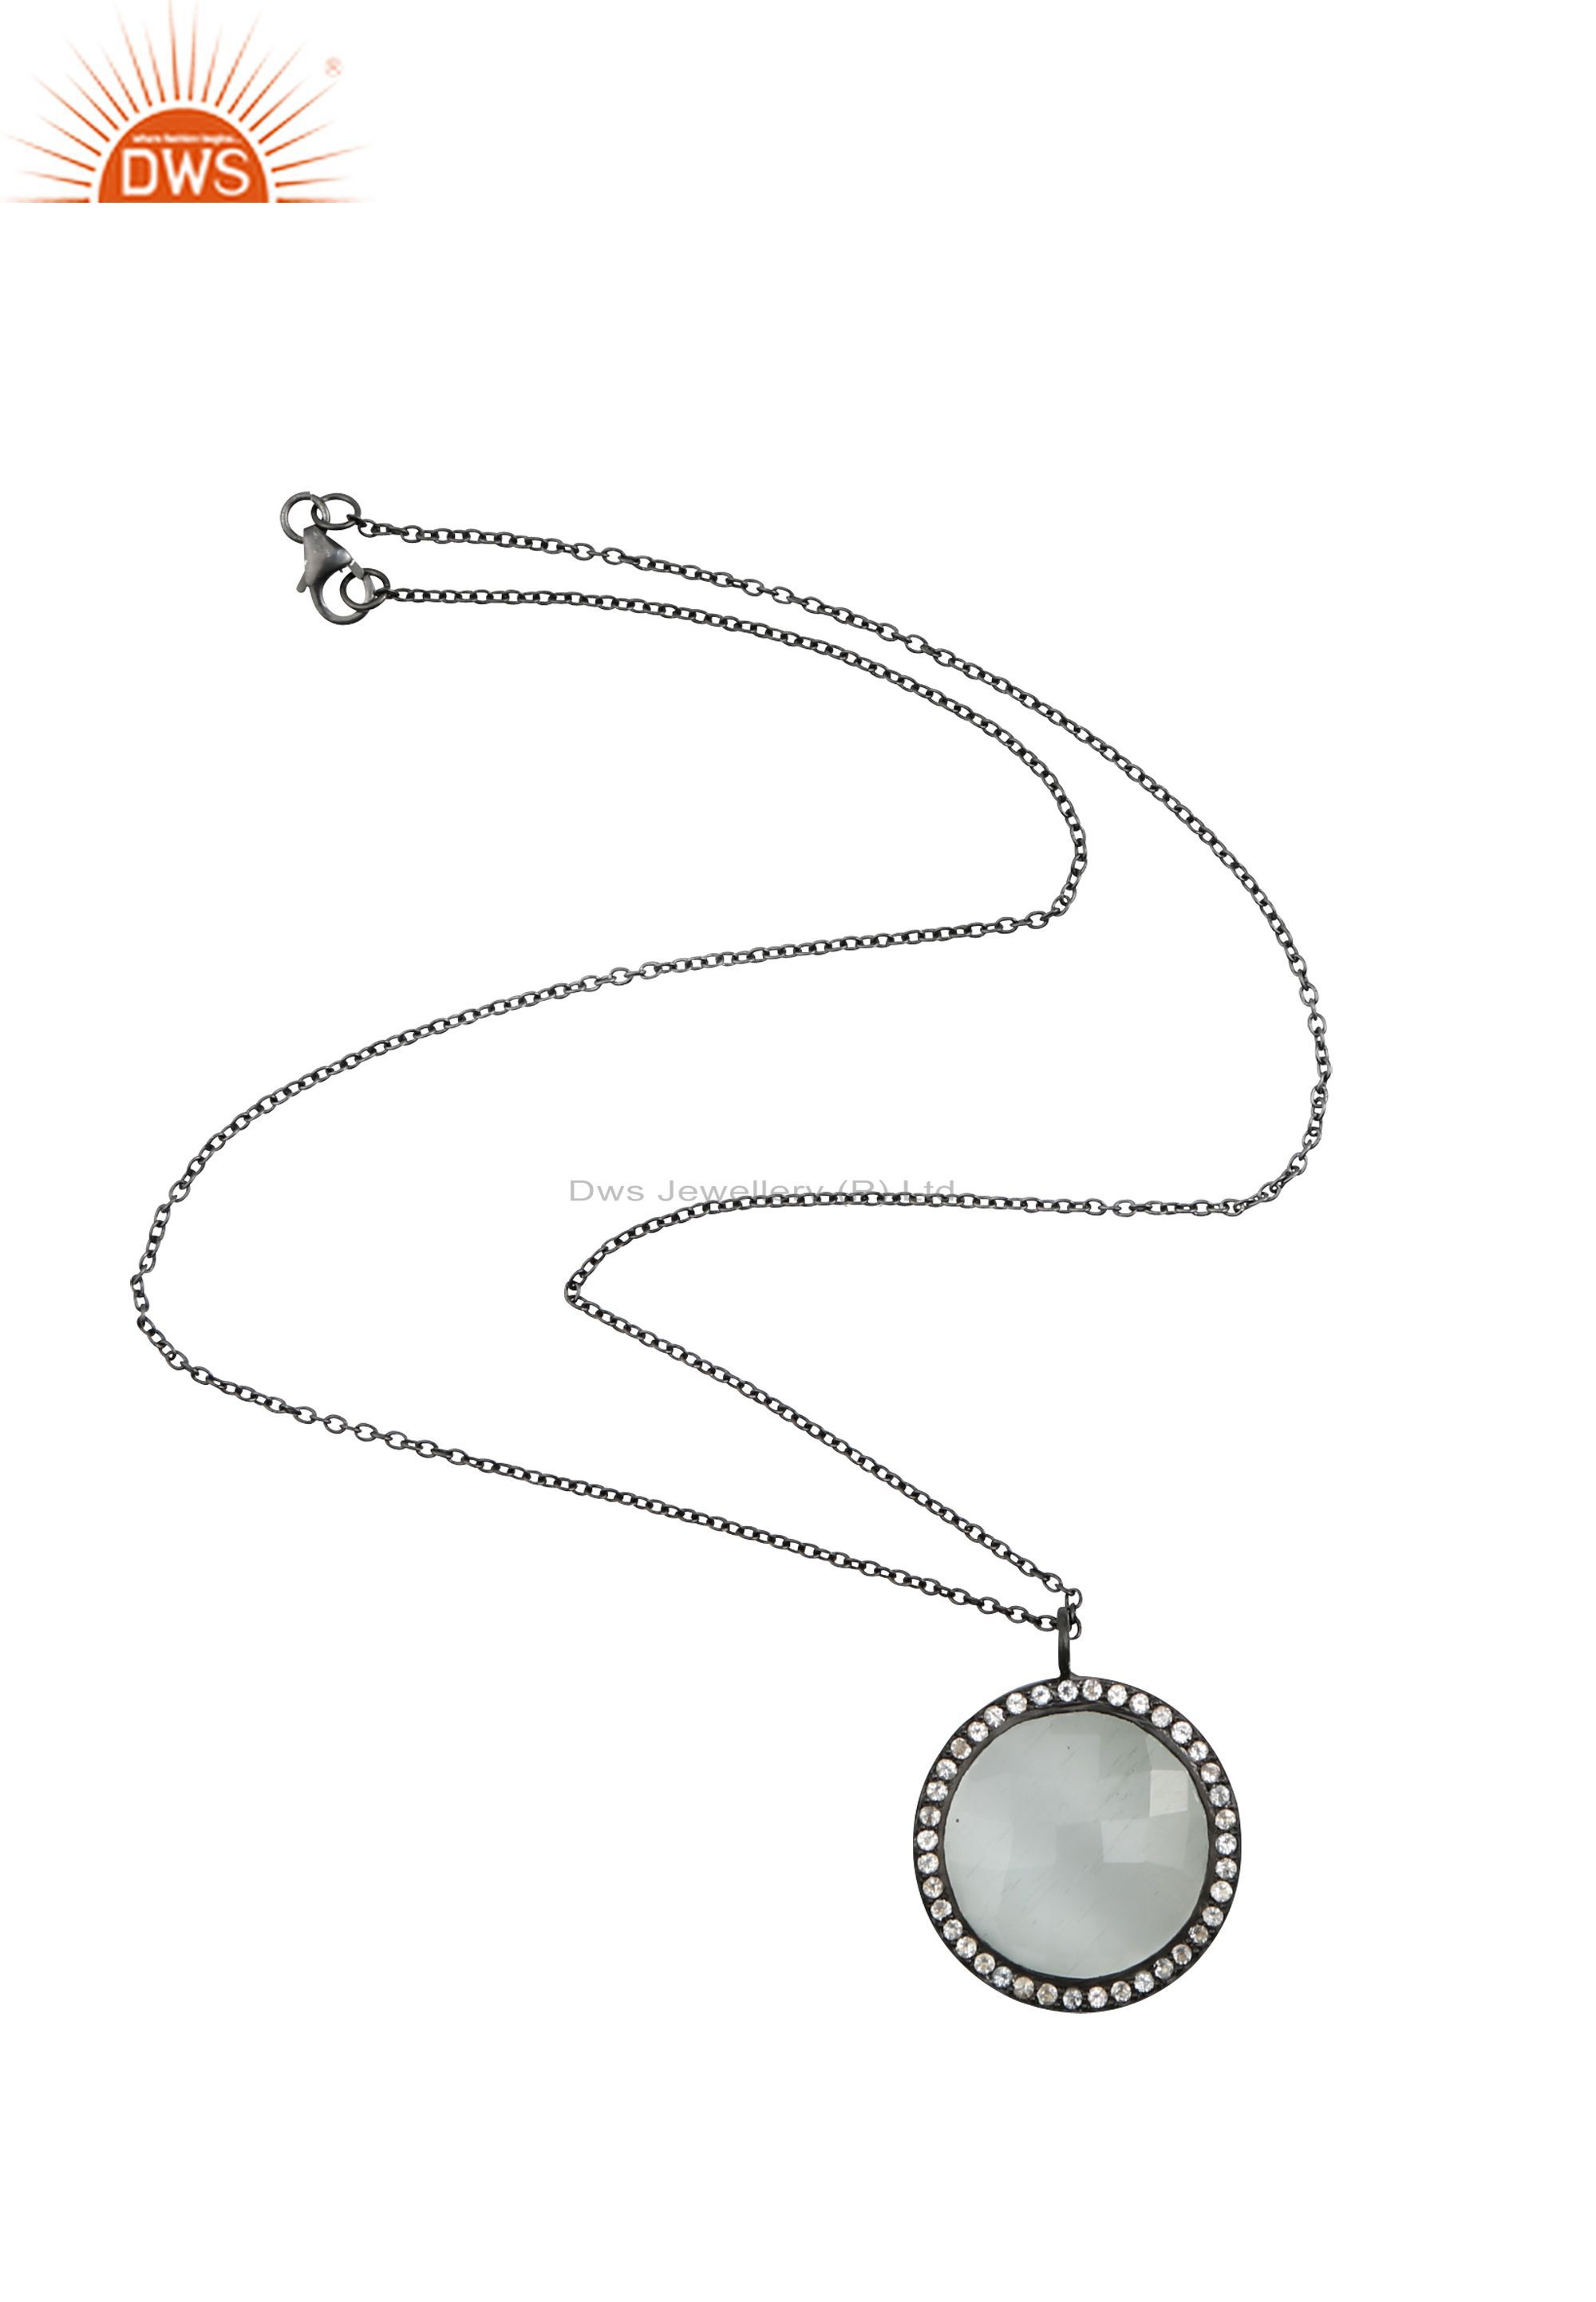 Oxidized sterling silver white moonstone and white topaz pendant with chain